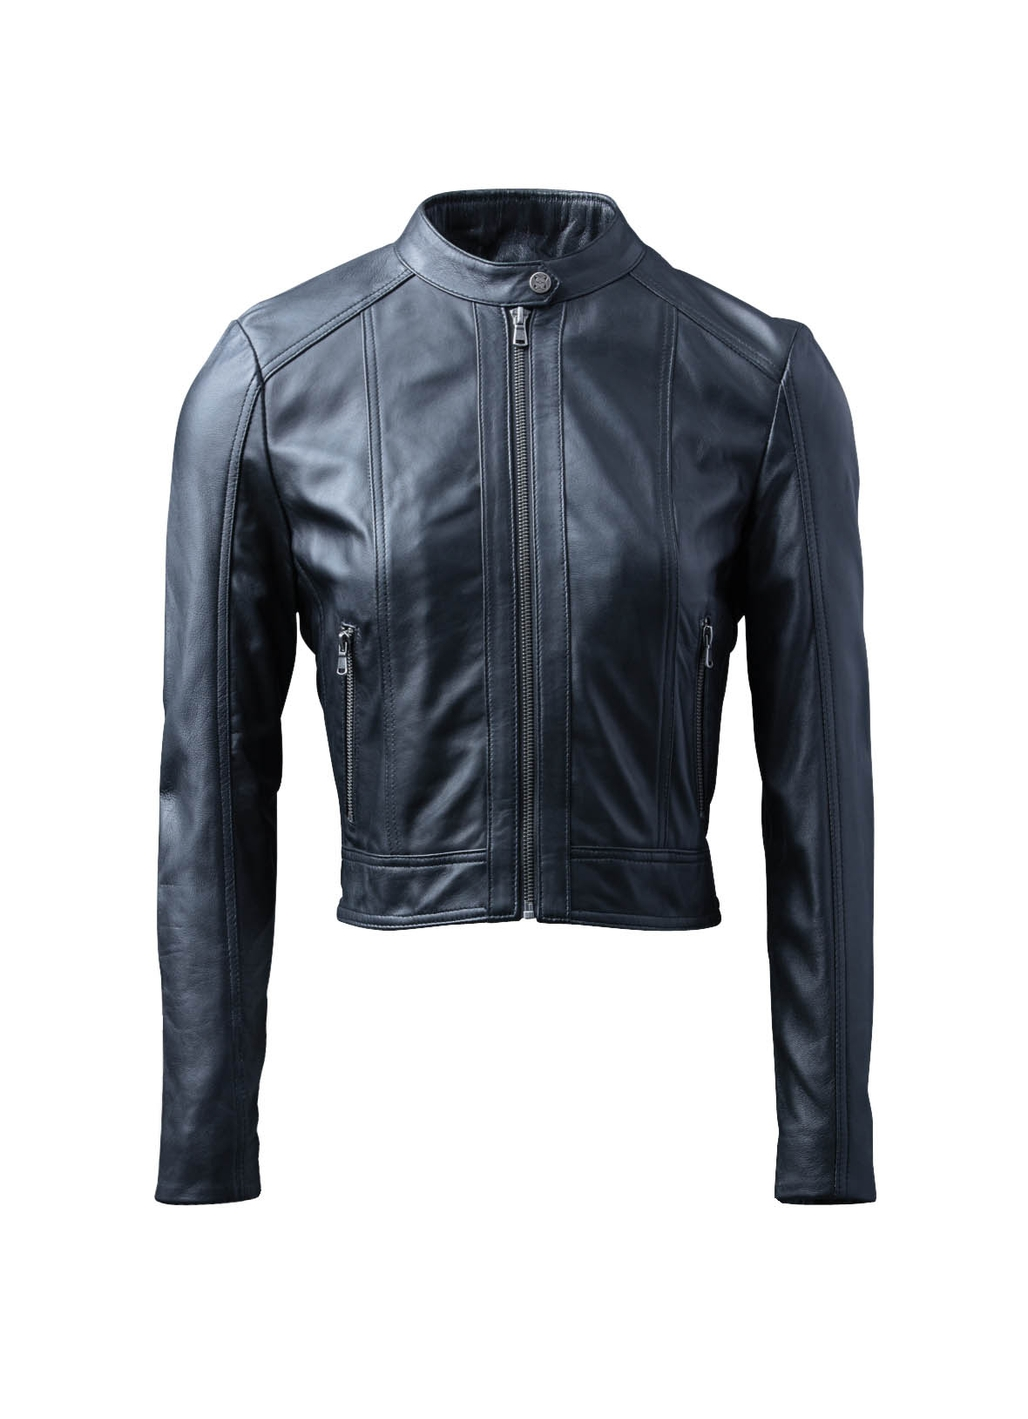 Loweswater II Leather Racer Jacket in Black